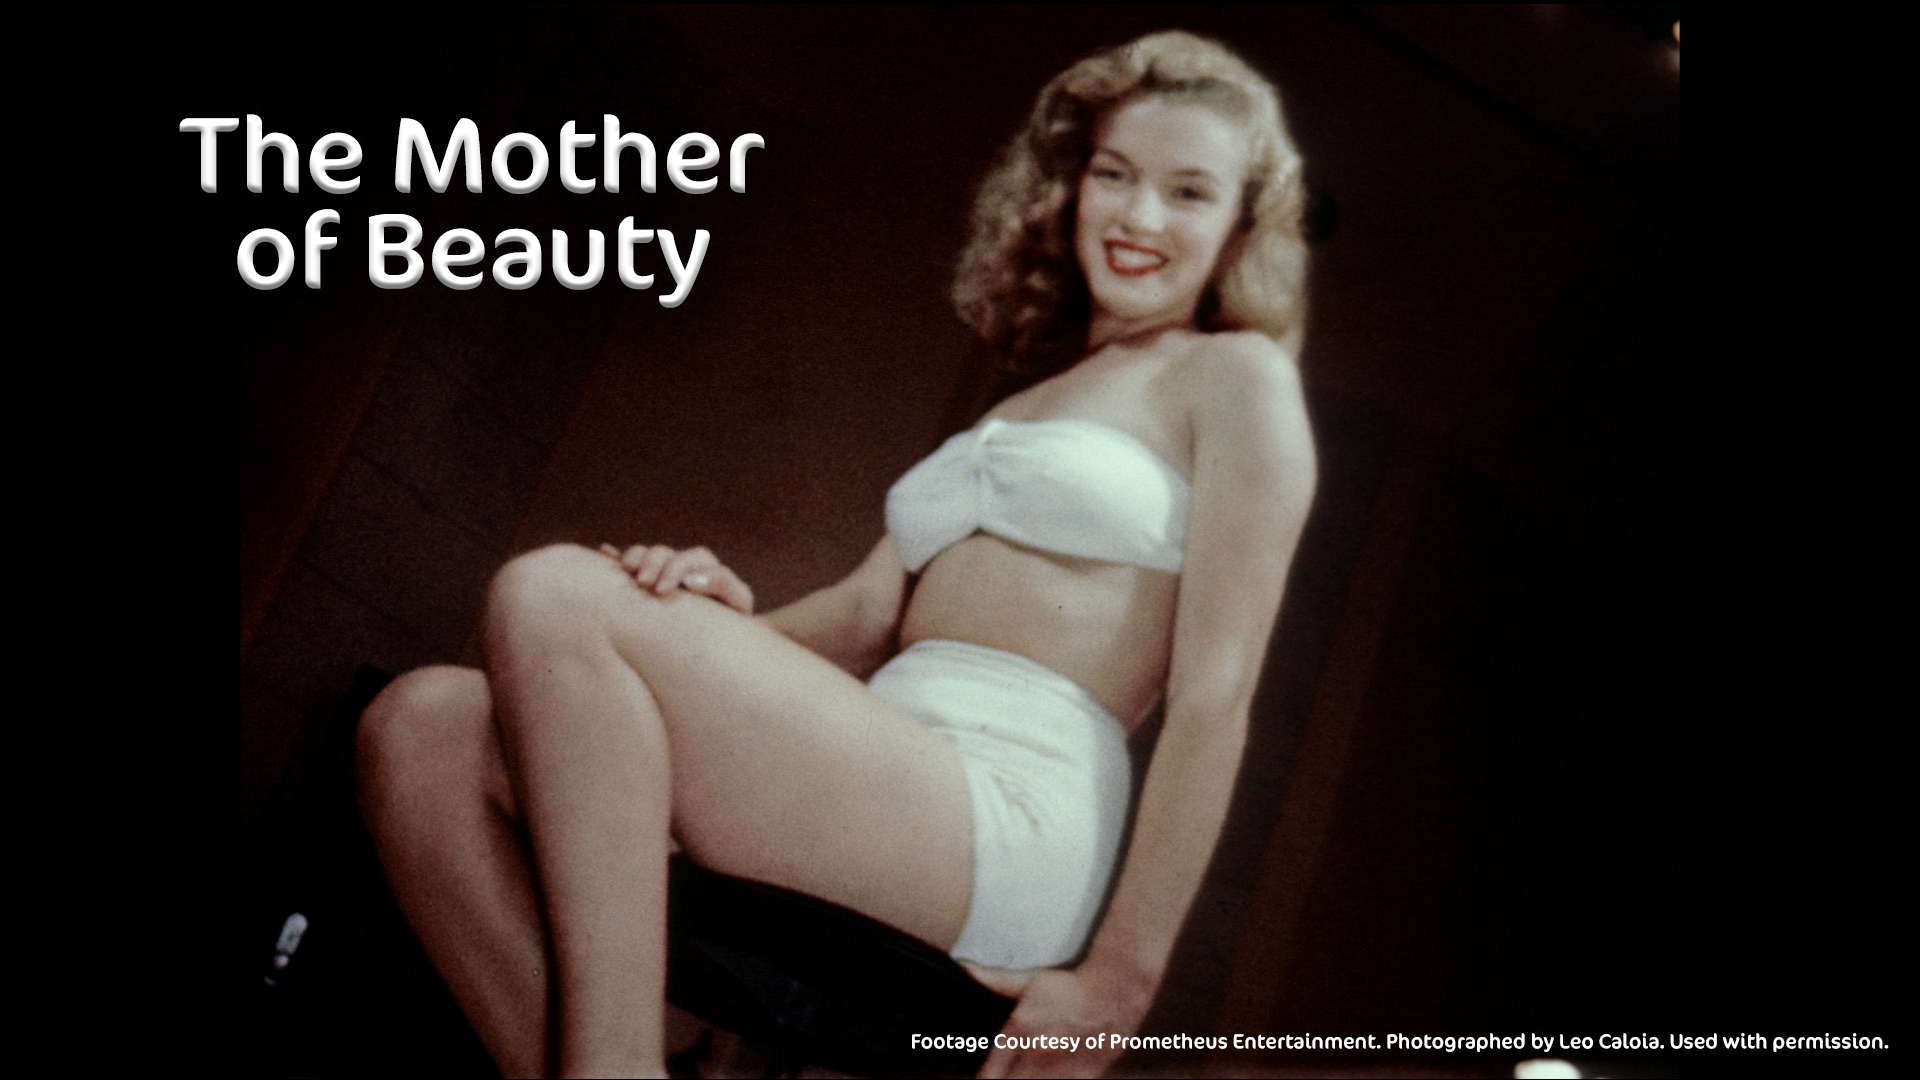 The Mother of Beauty